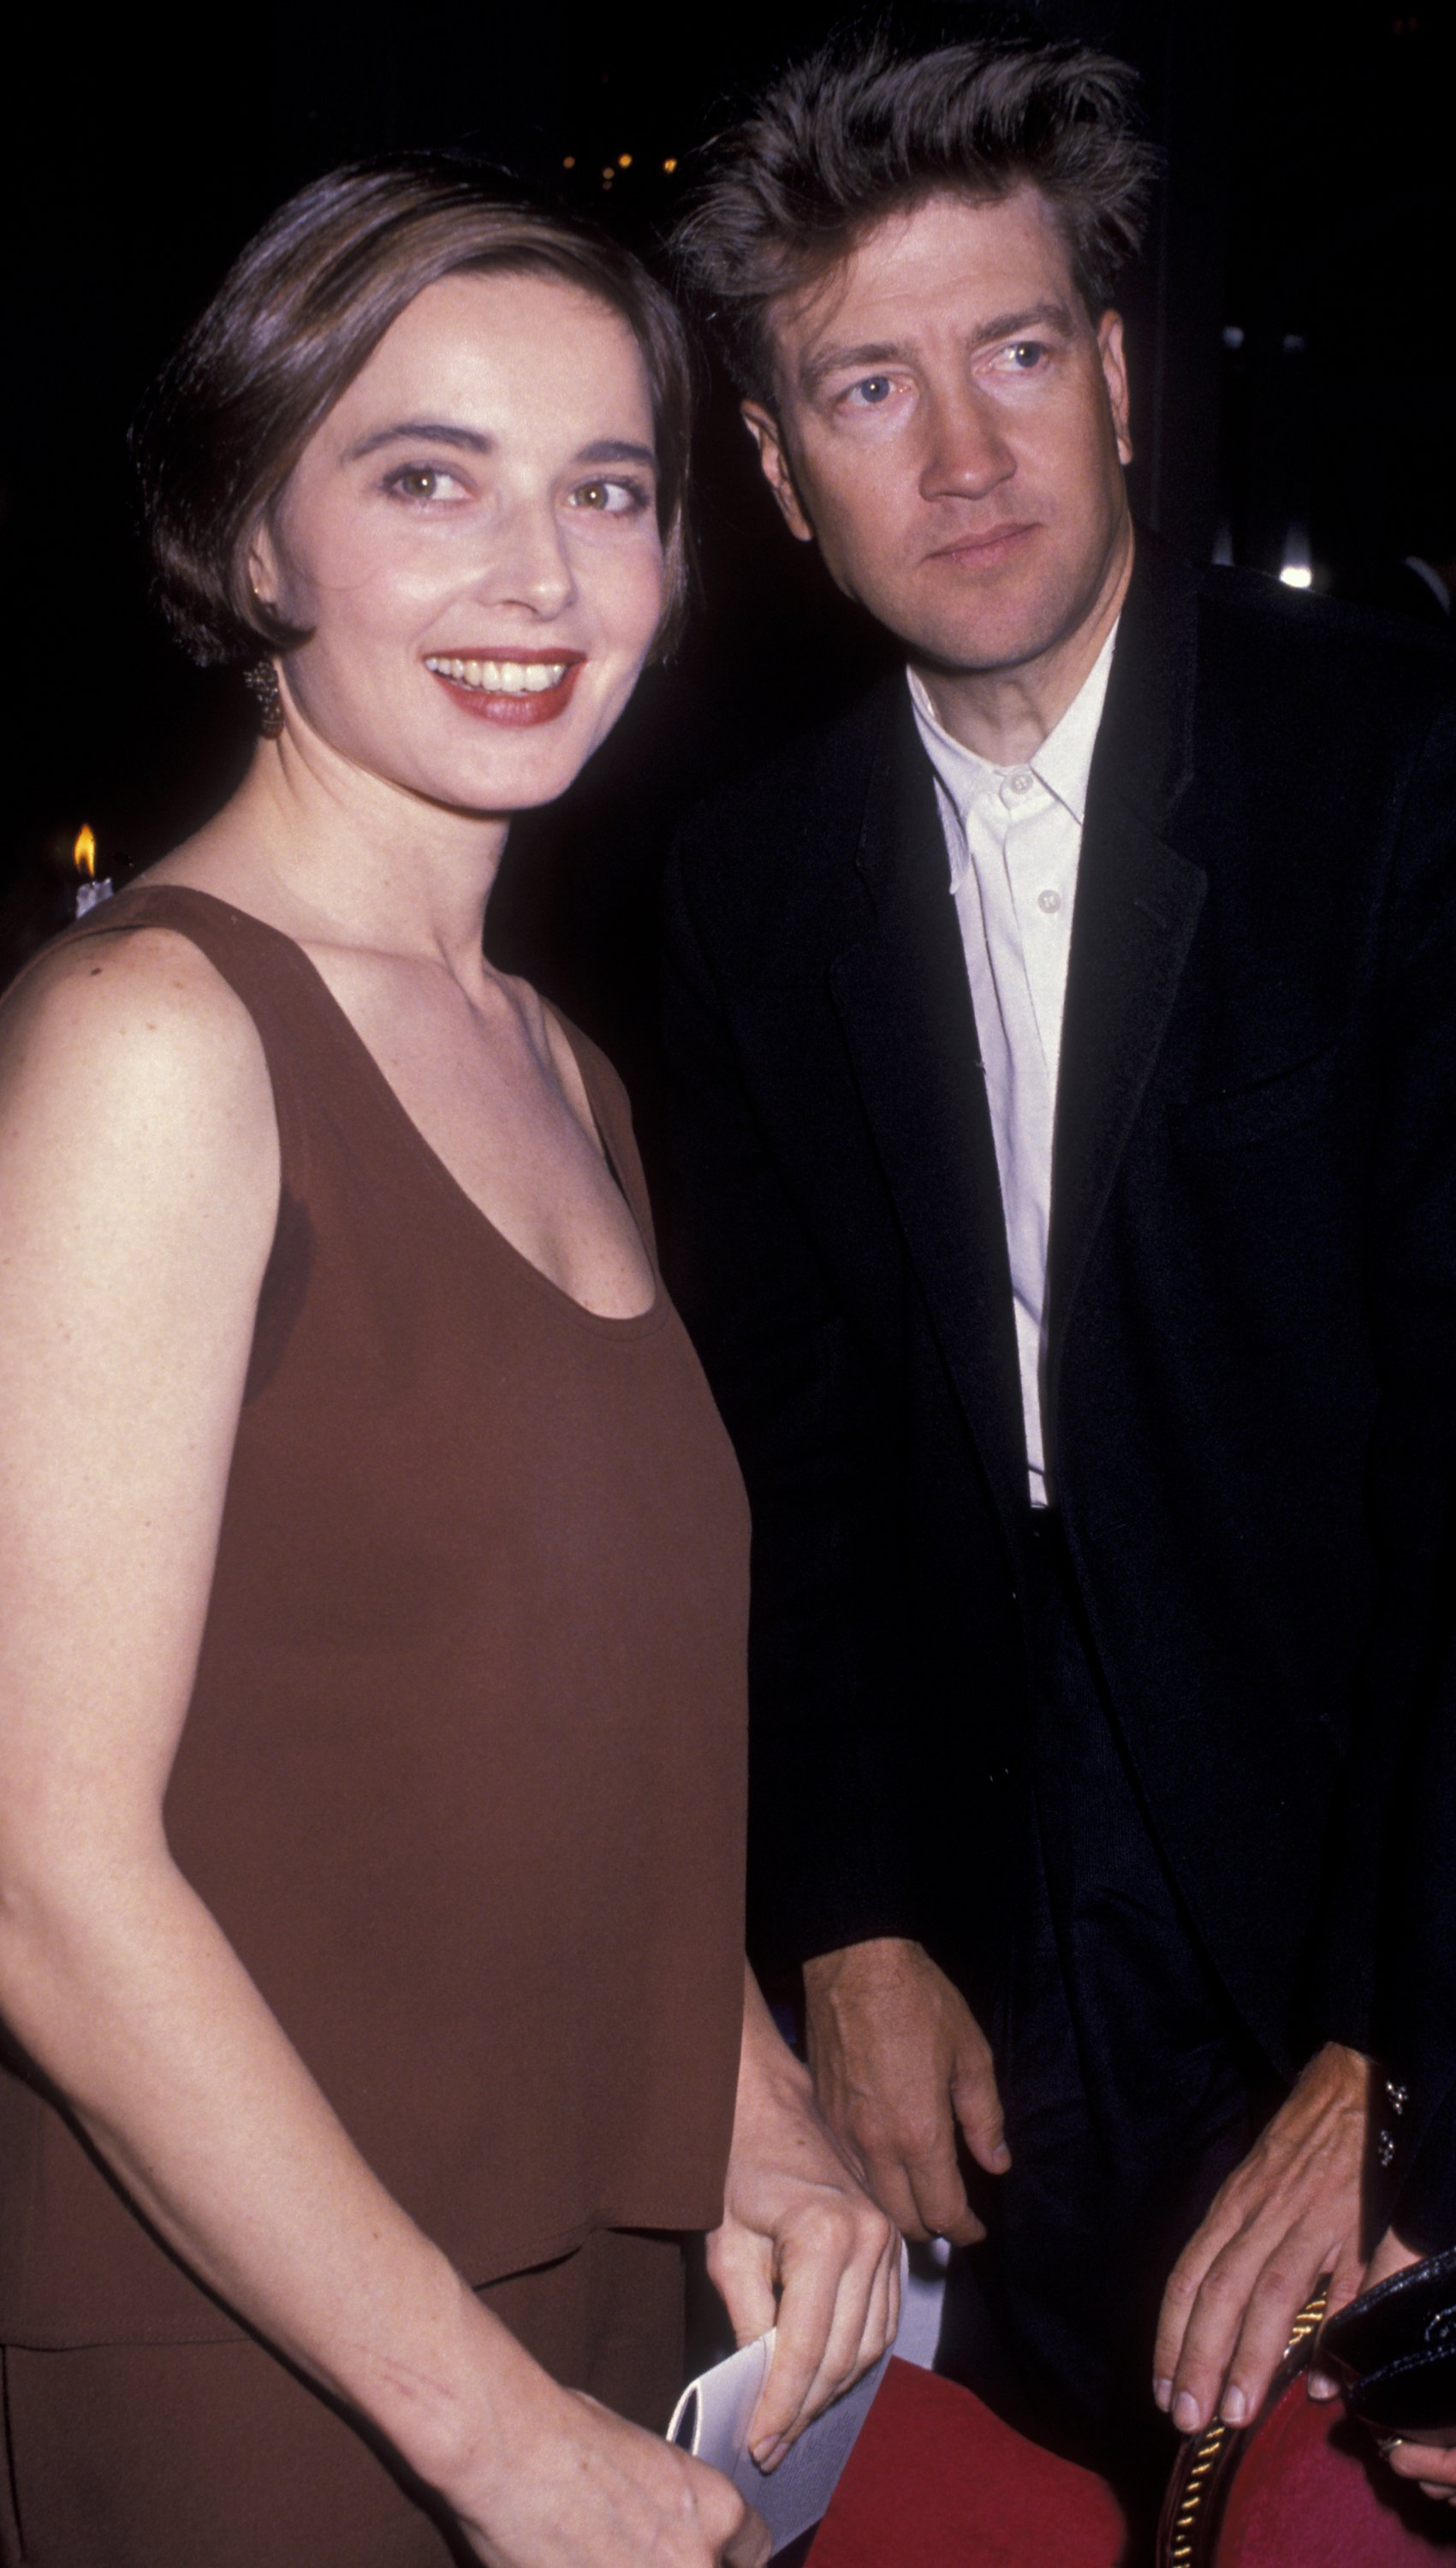 David Lynch and Isabella Rossellini at the Night of 100 Stars Gala in 1989 | Source: Getty Images